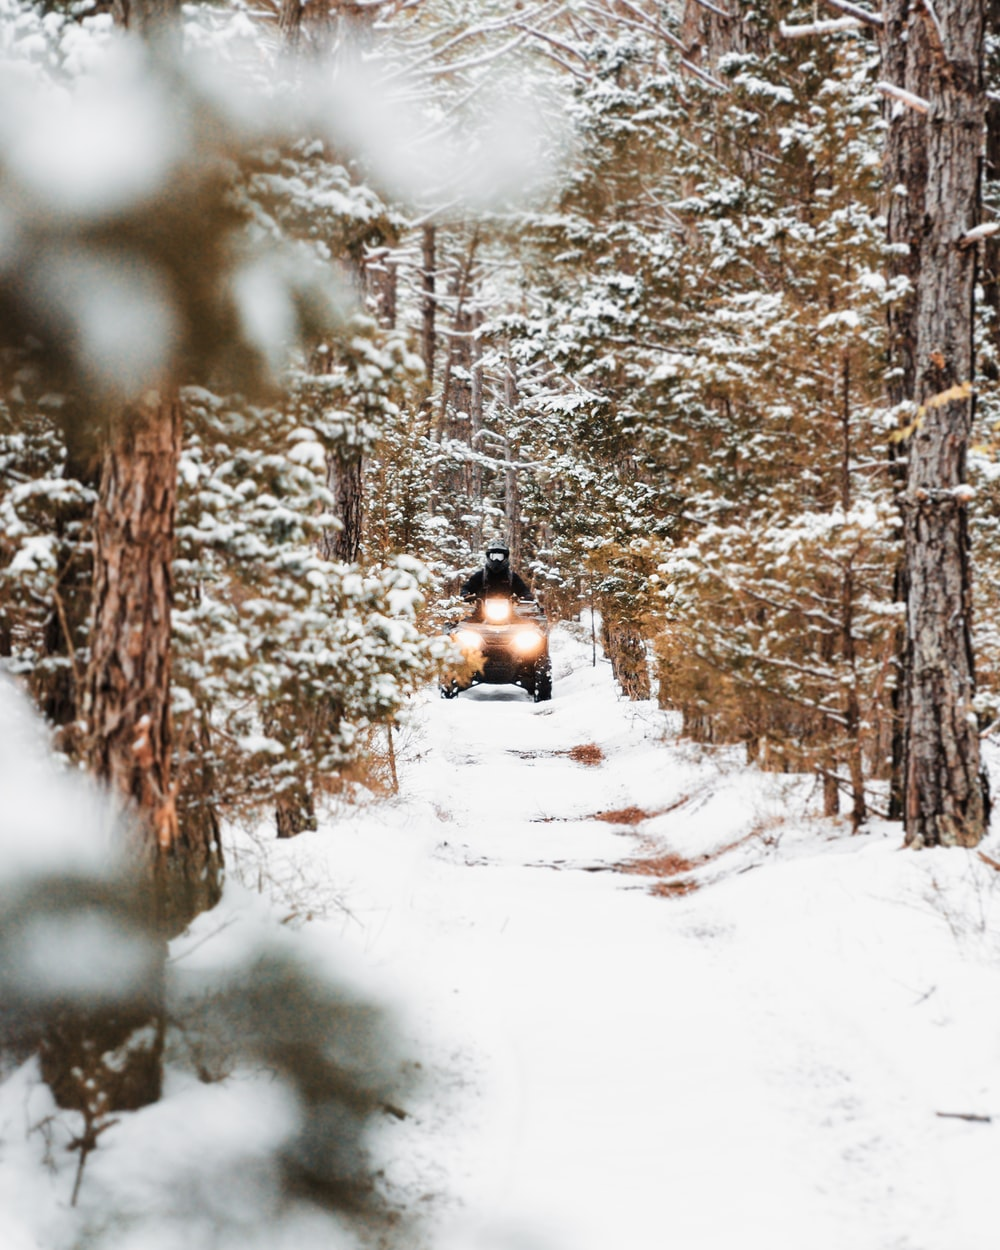 person riding on snow sled in the middle of the forest during daytime